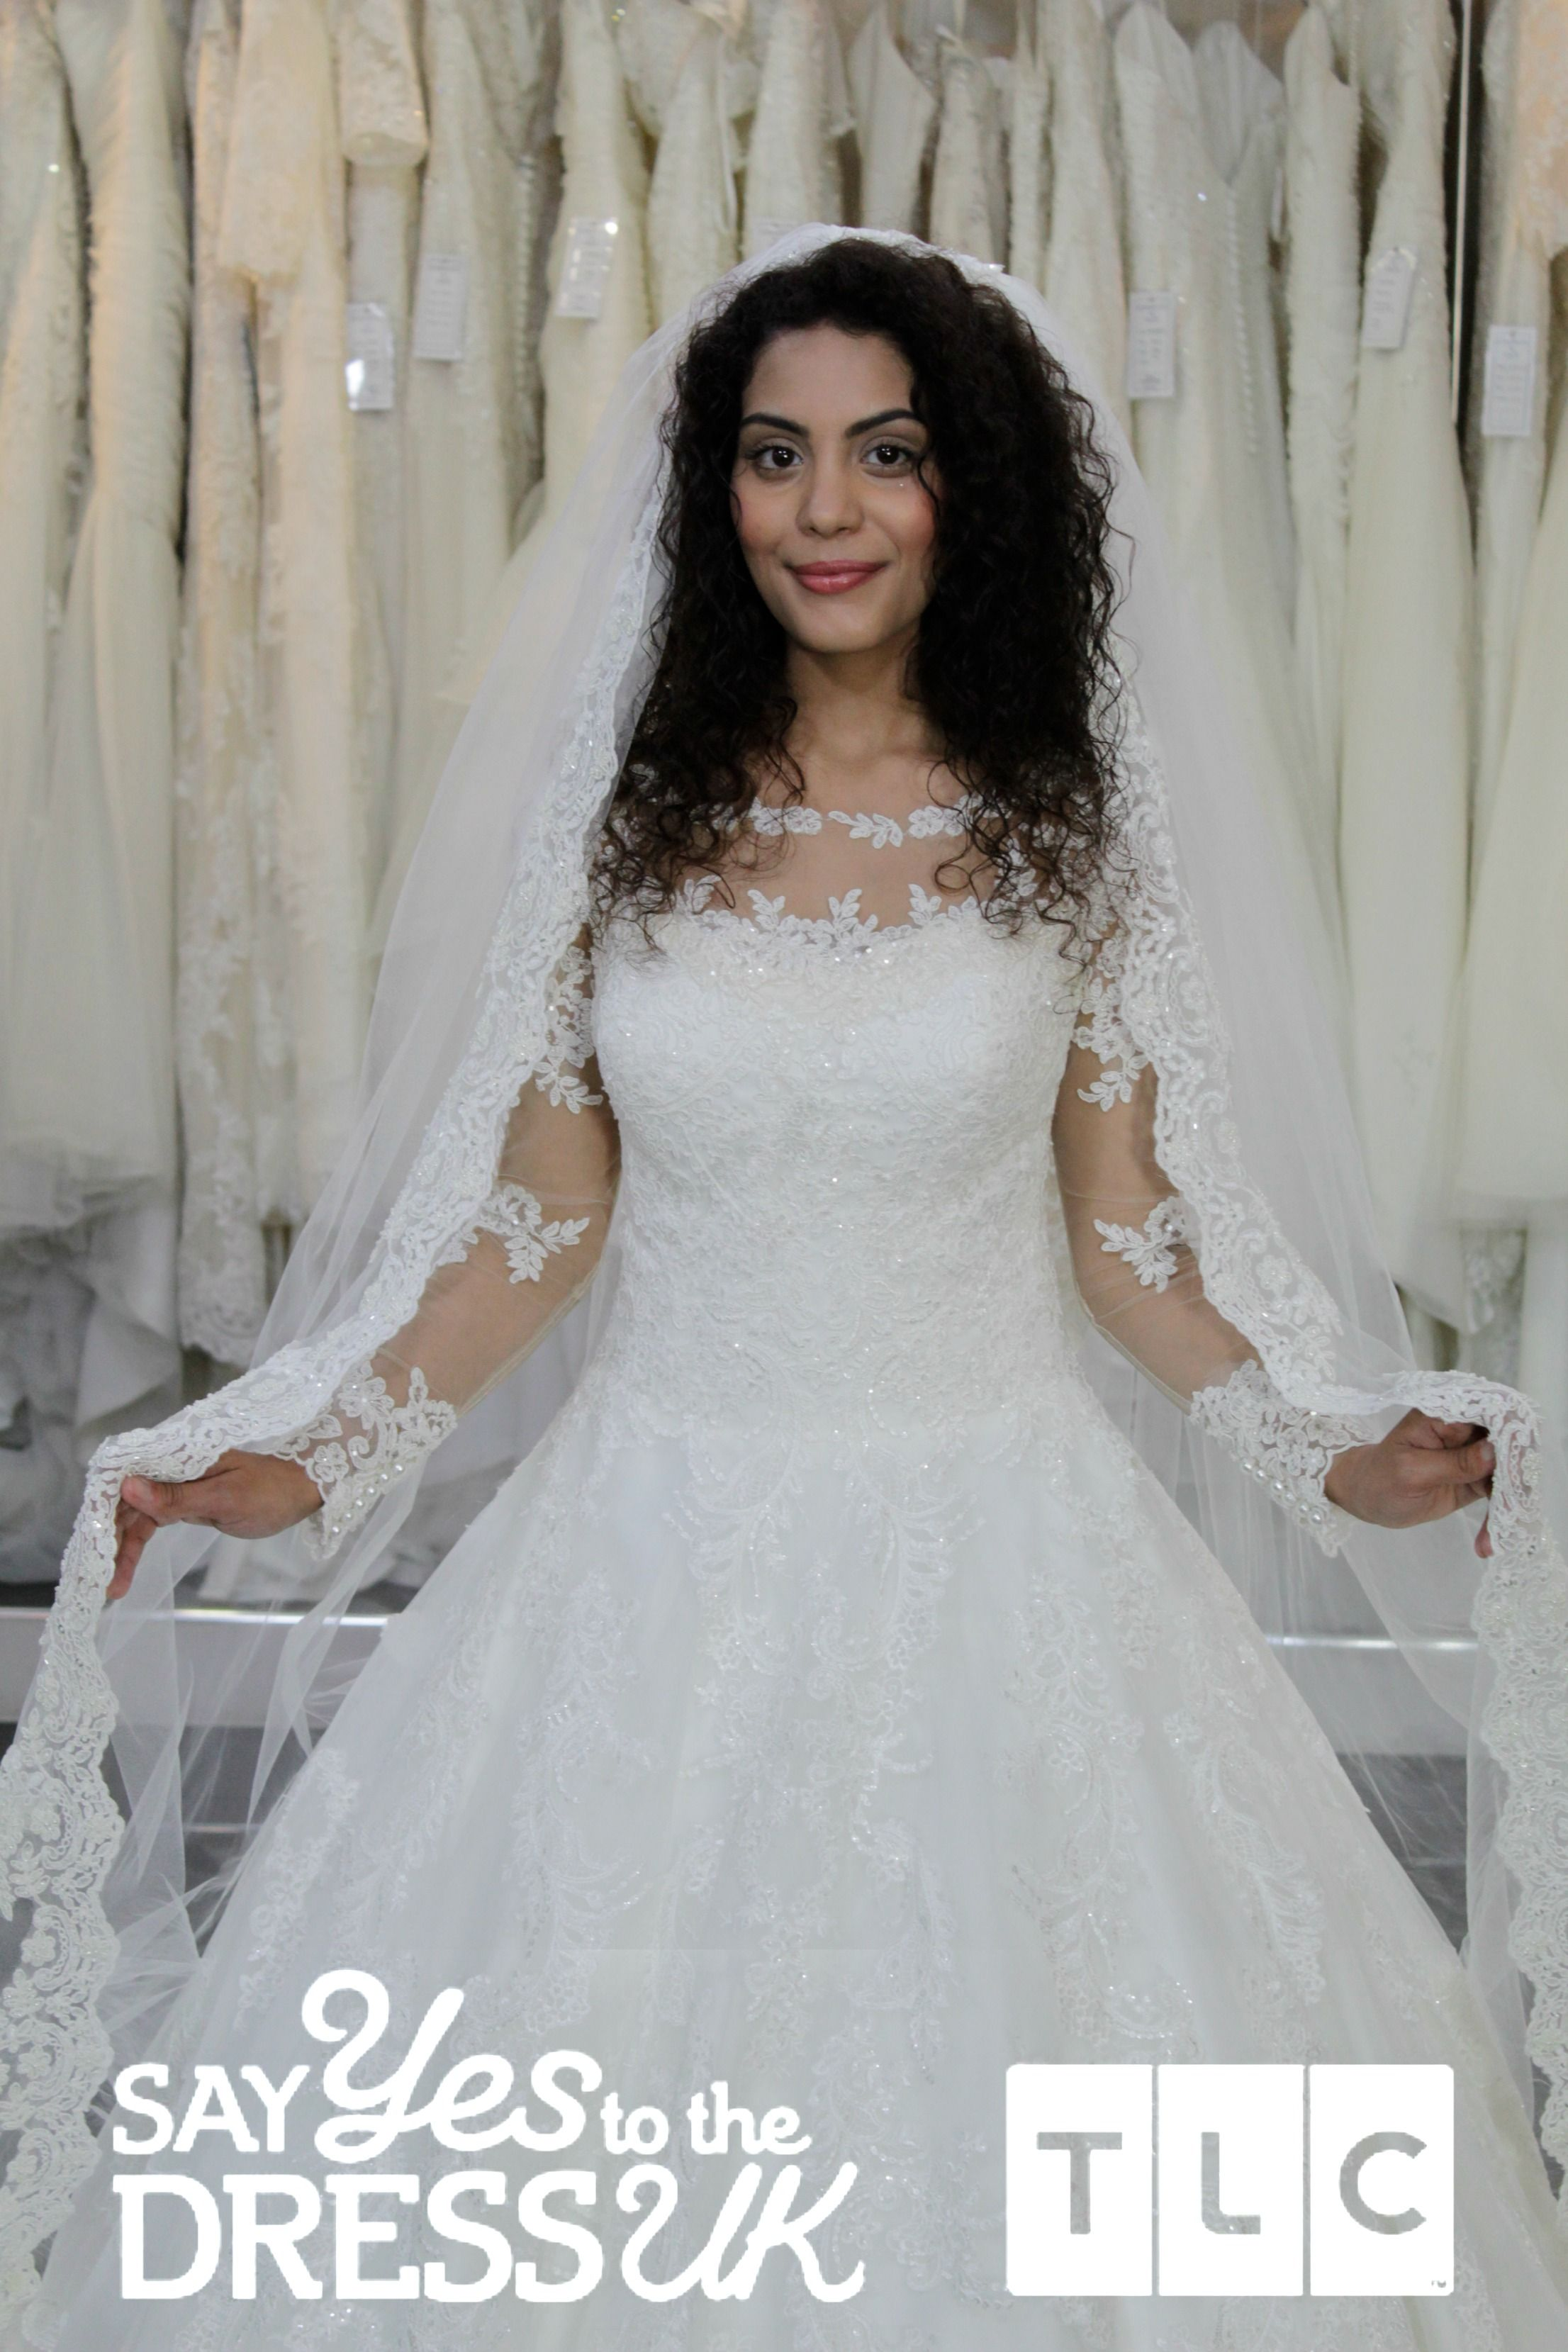 Long lace sleeves and dramatic detailing on this veil make